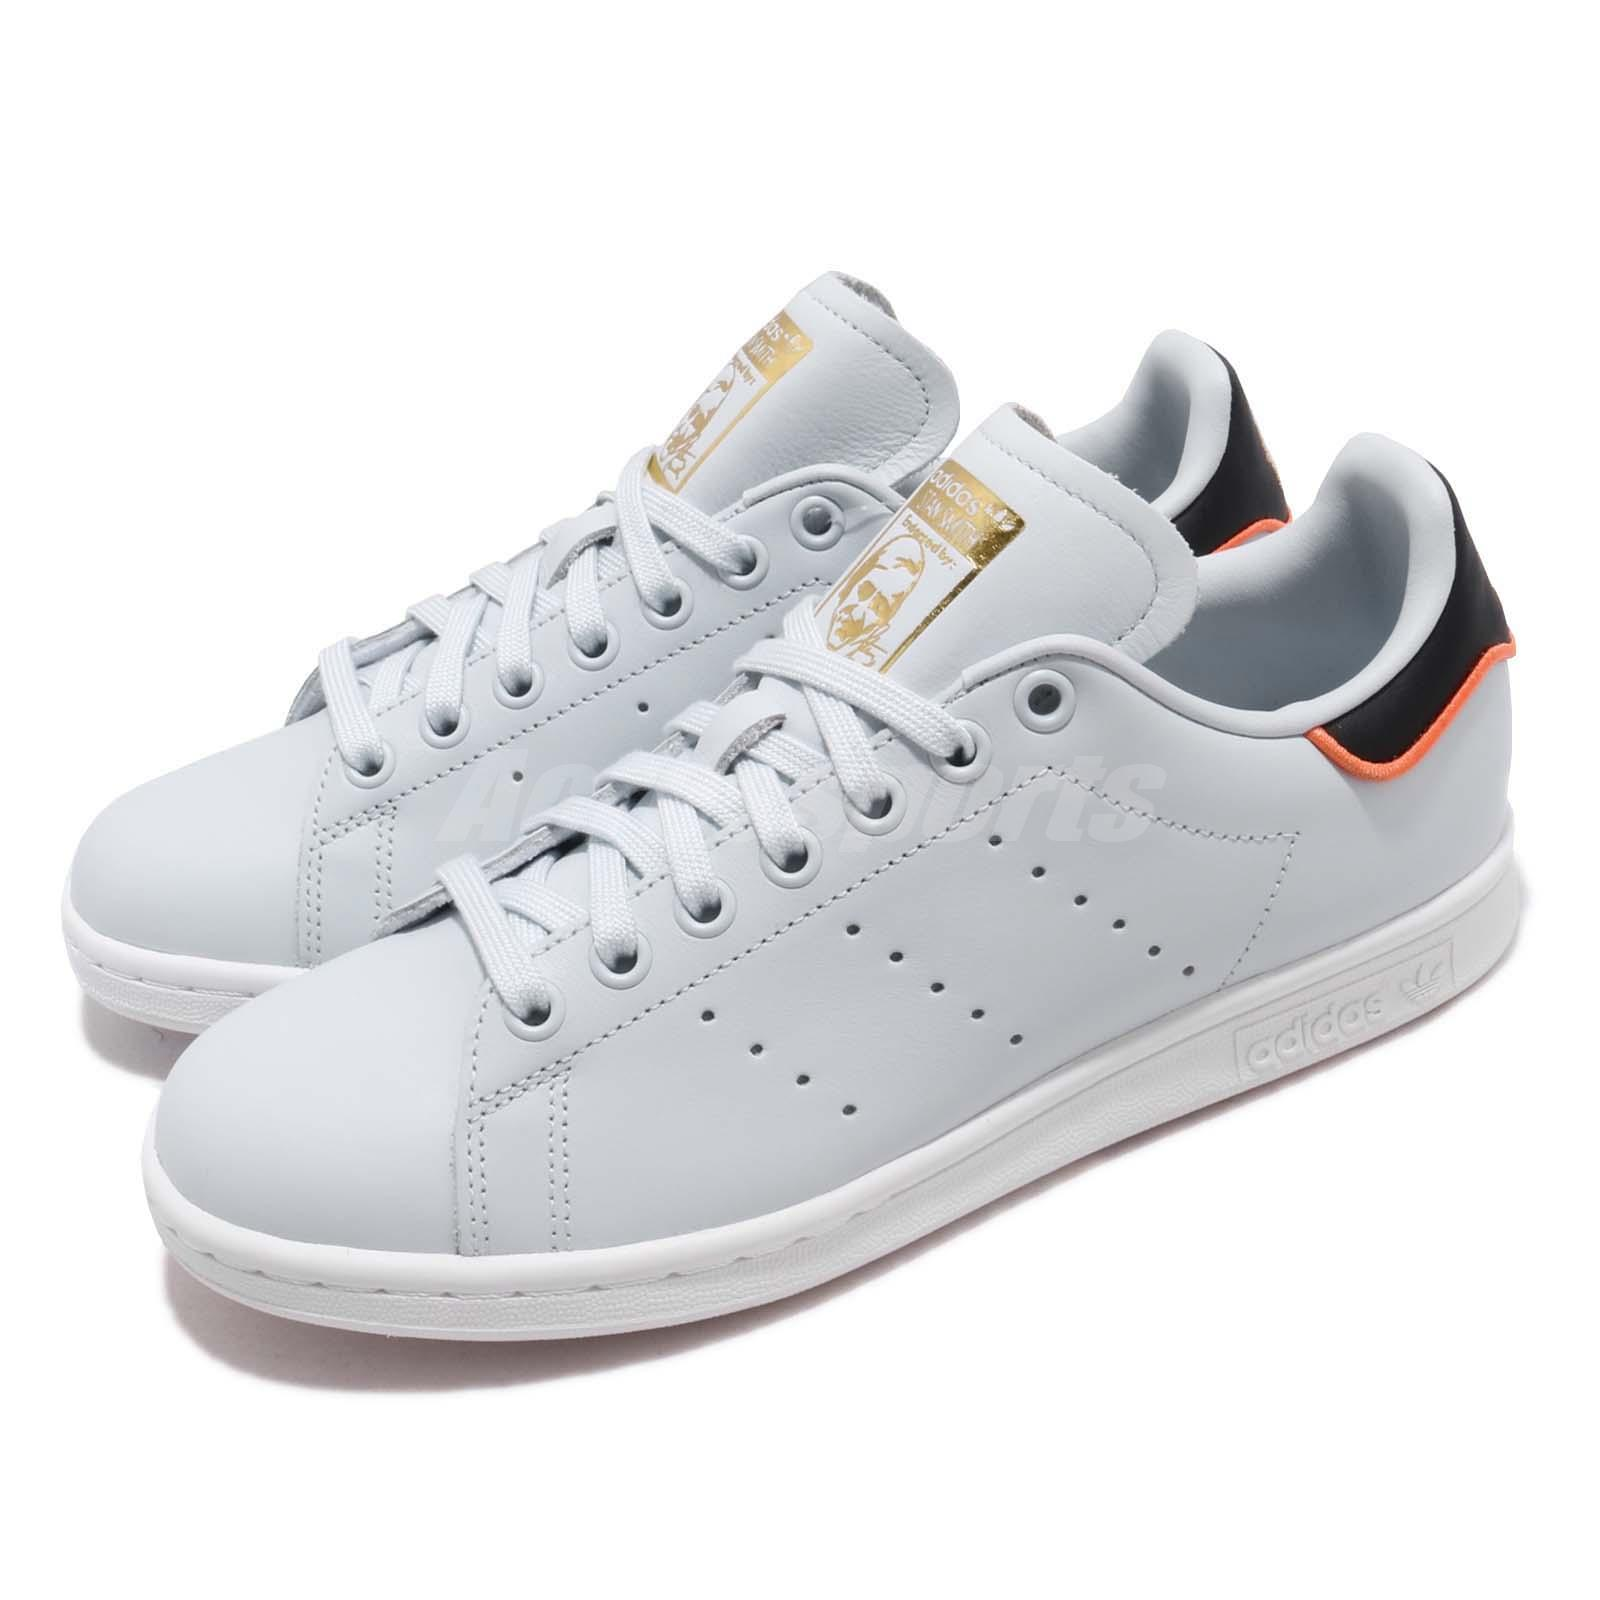 Details about adidas Originals Stan Smith W Blue Tint Black Women Casual Shoes Sneakers B41601